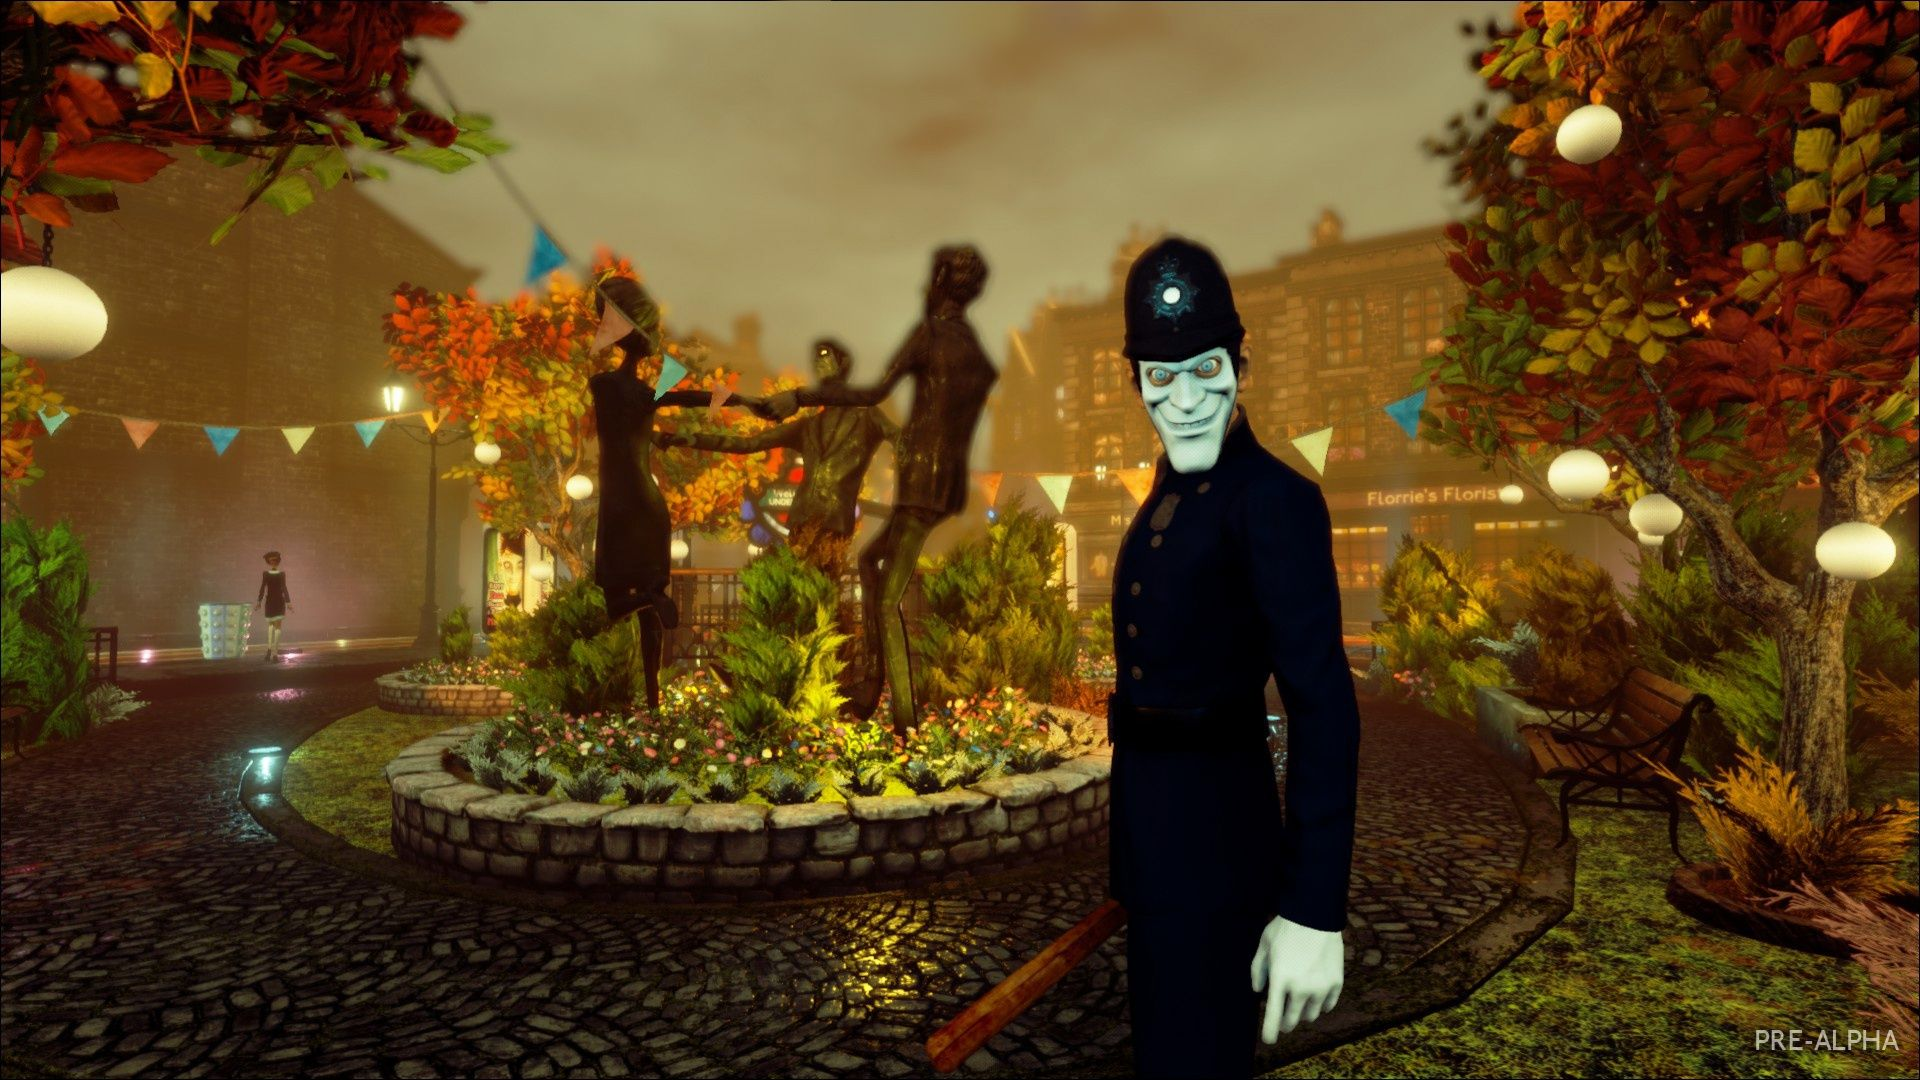 We Happy Few is available now on Xbox Early Access